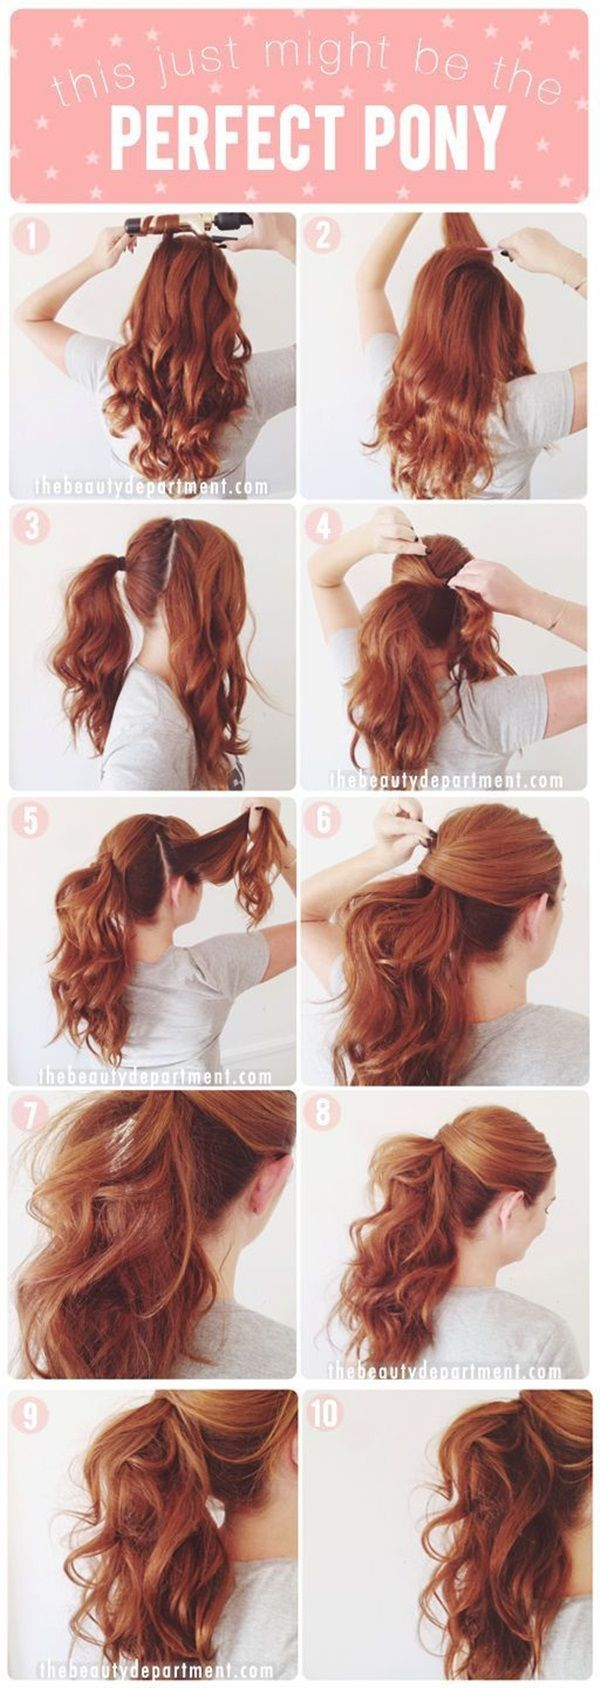 Superb 1000 Ideas About Diy Hairstyles On Pinterest Easy Diy Hairstyle Inspiration Daily Dogsangcom